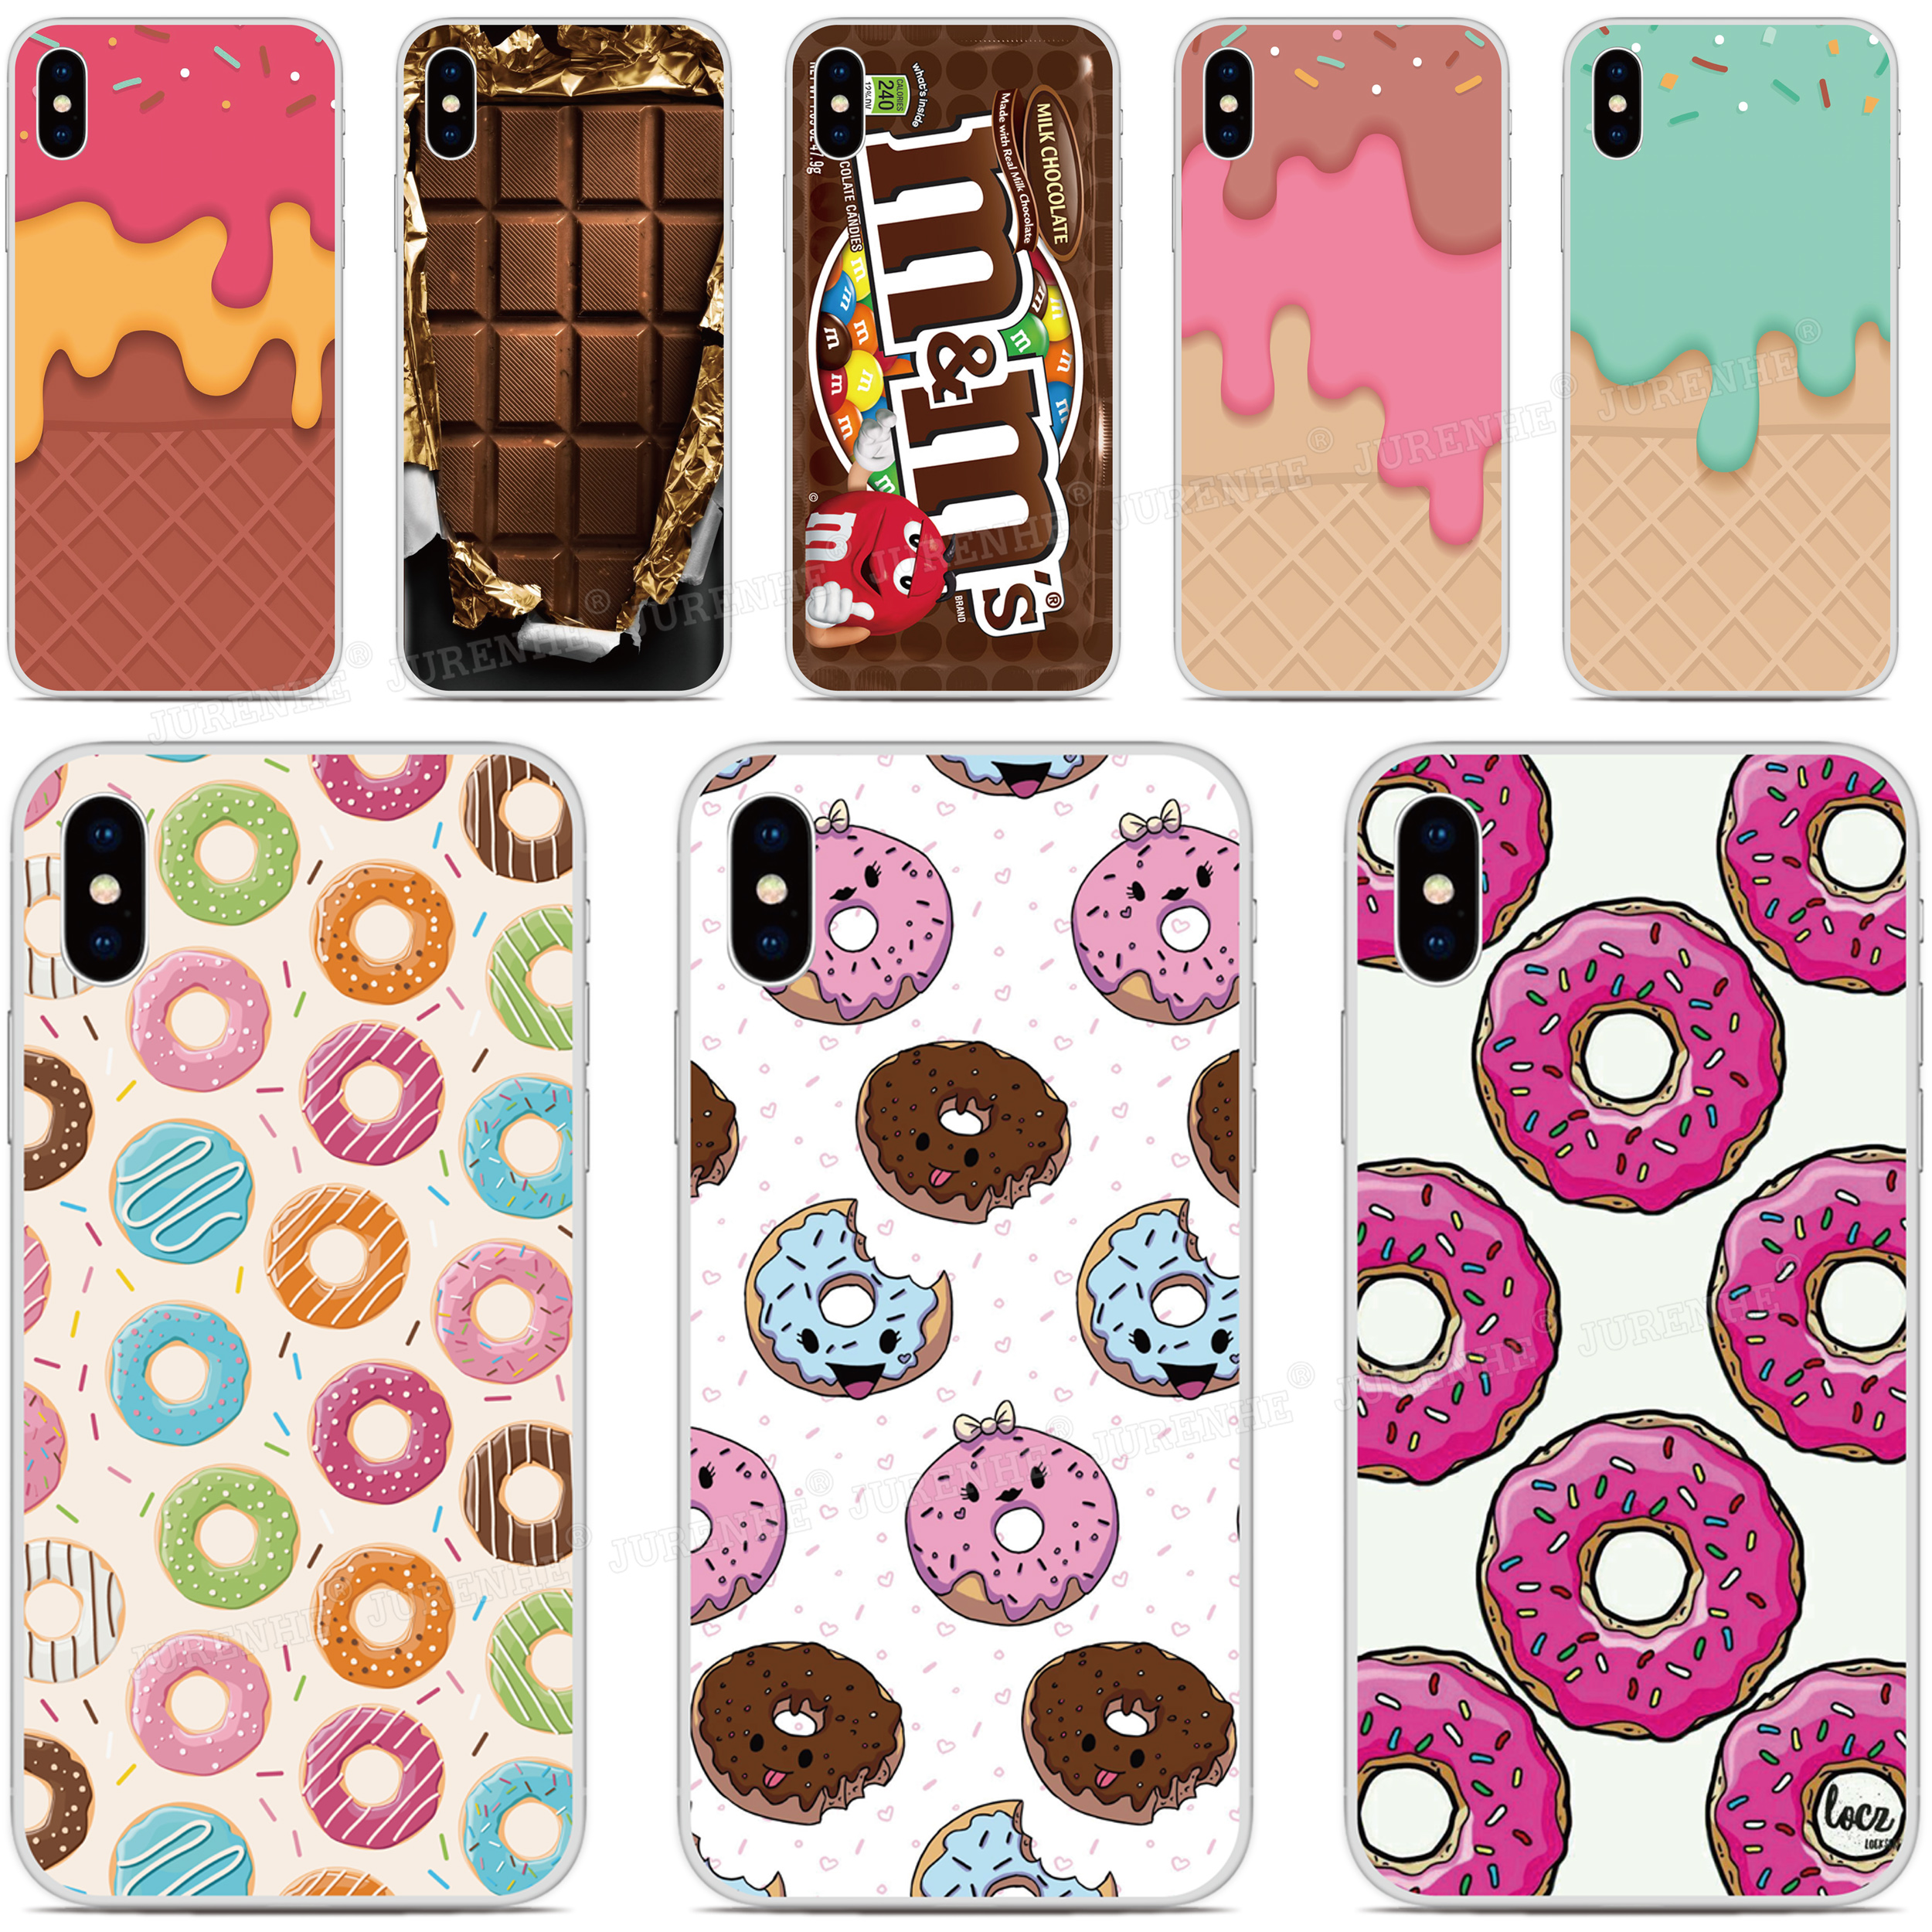 Chocolate Donut Phone Case For LG Stylo 6 5 4 Aristo5 Plus K31 K51 Velvet V50S G7 G8 Thinq K11 K10 K9 K8 2018 Rakuten Mini Cover